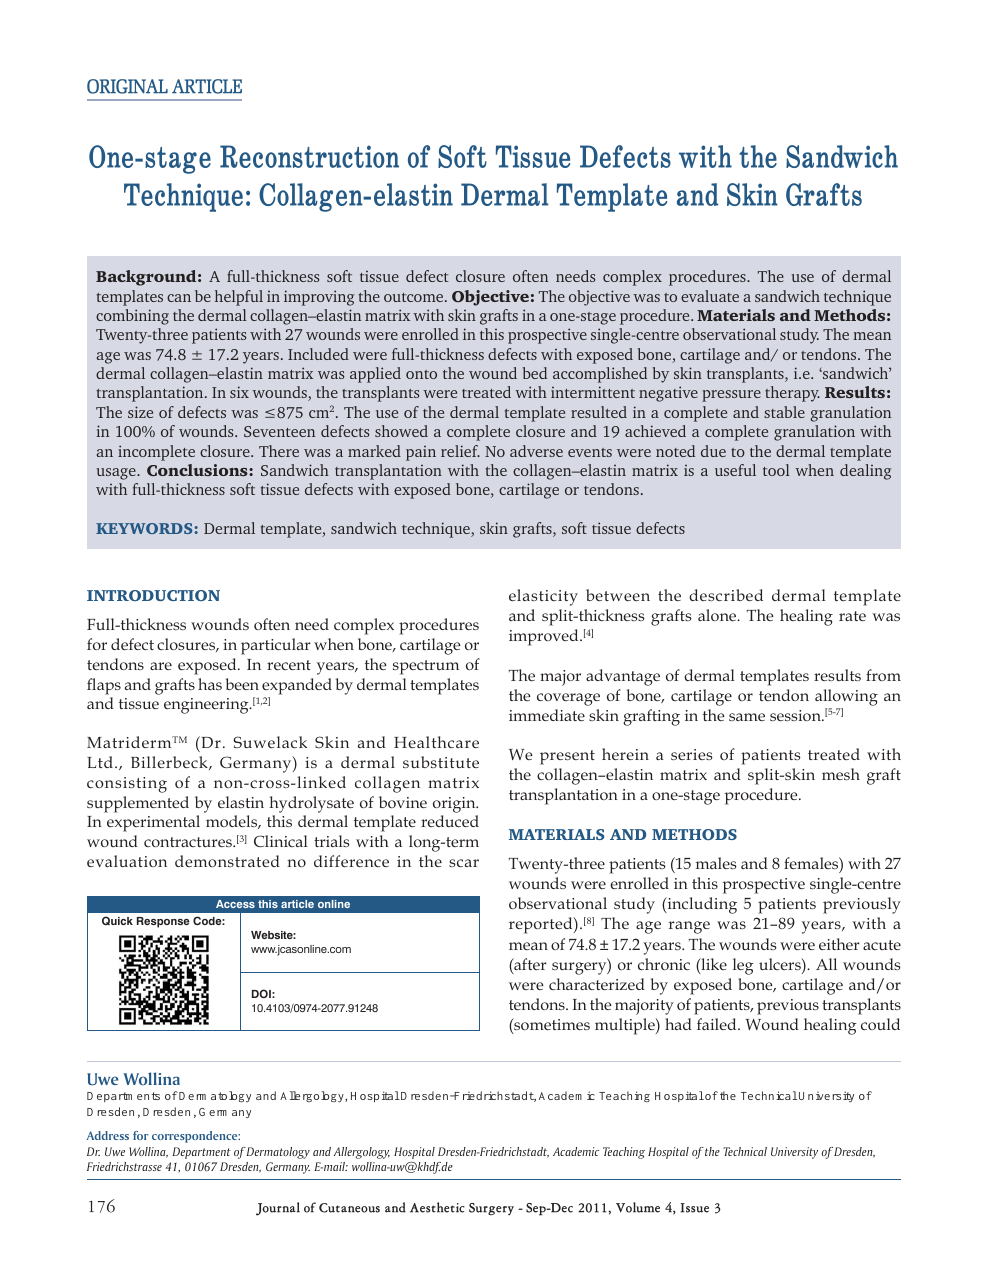 One Stage Reconstruction Of Soft Tissue Defects With The Sandwich Technique Collagen Elastin Dermal Template And Skin Grafts Topic Of Research Paper In Clinical Medicine Download Scholarly Article Pdf And Read For Free